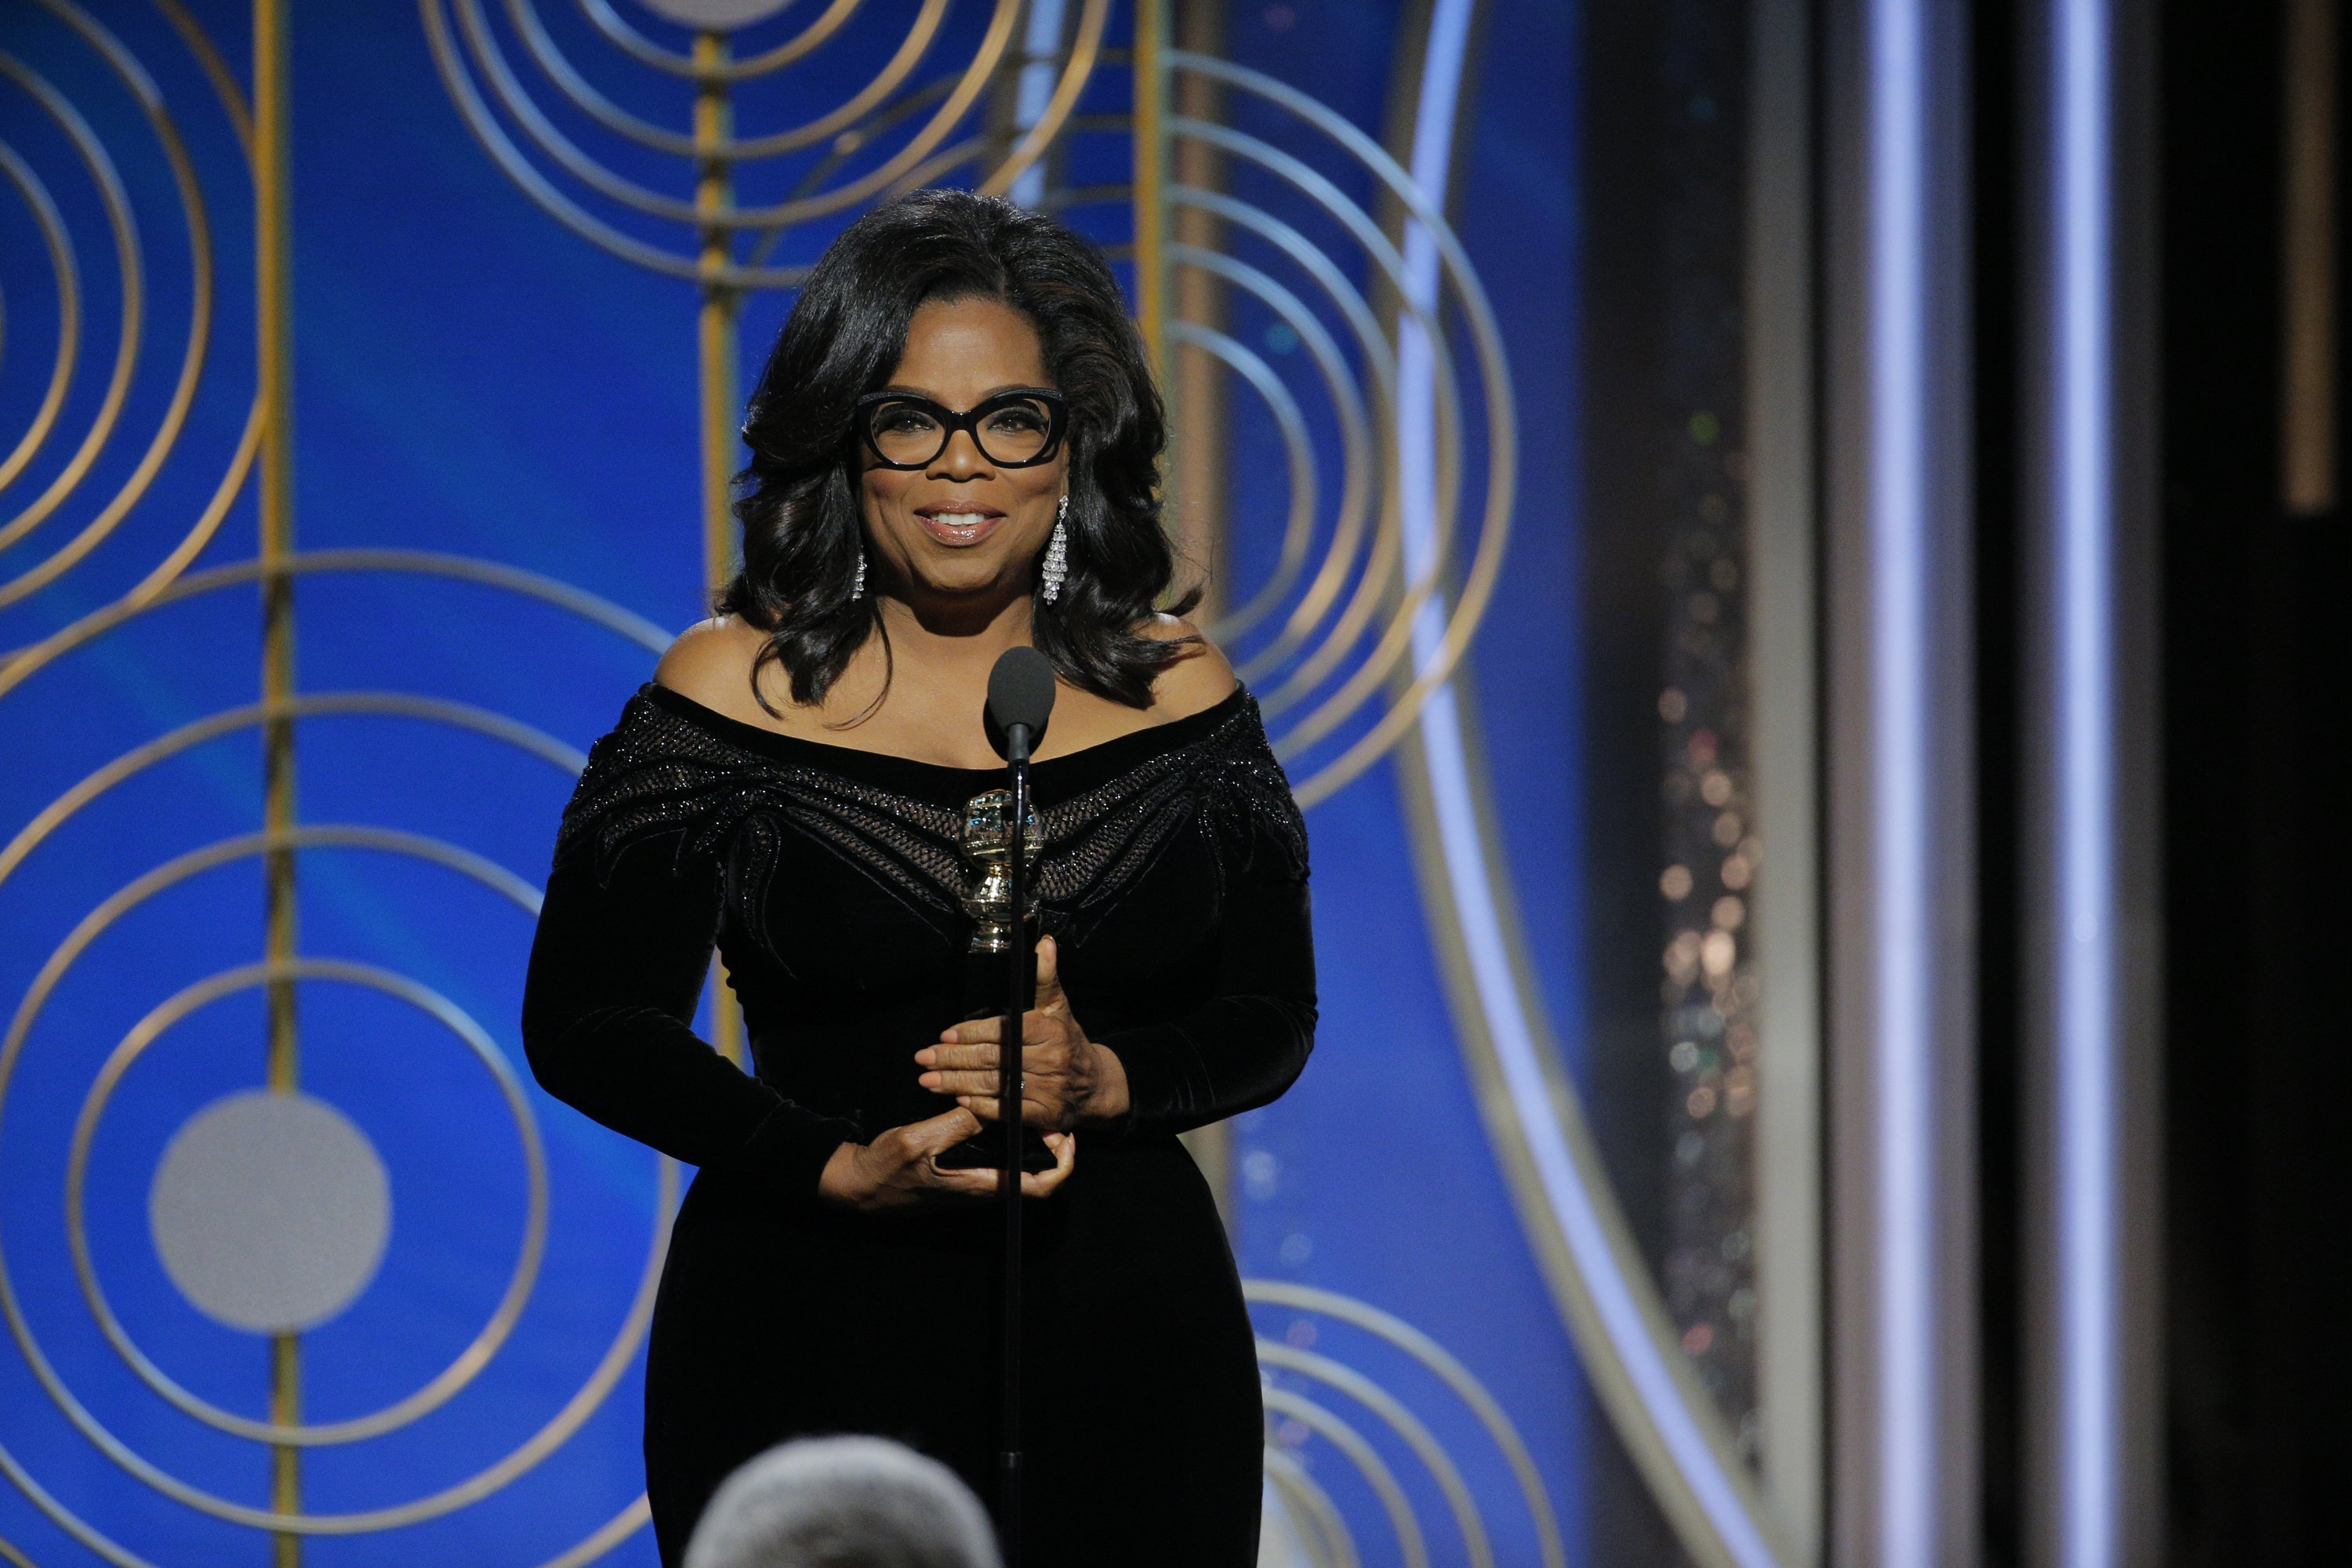 Media mogul Oprah Winfrey draws U.S. presidential interest